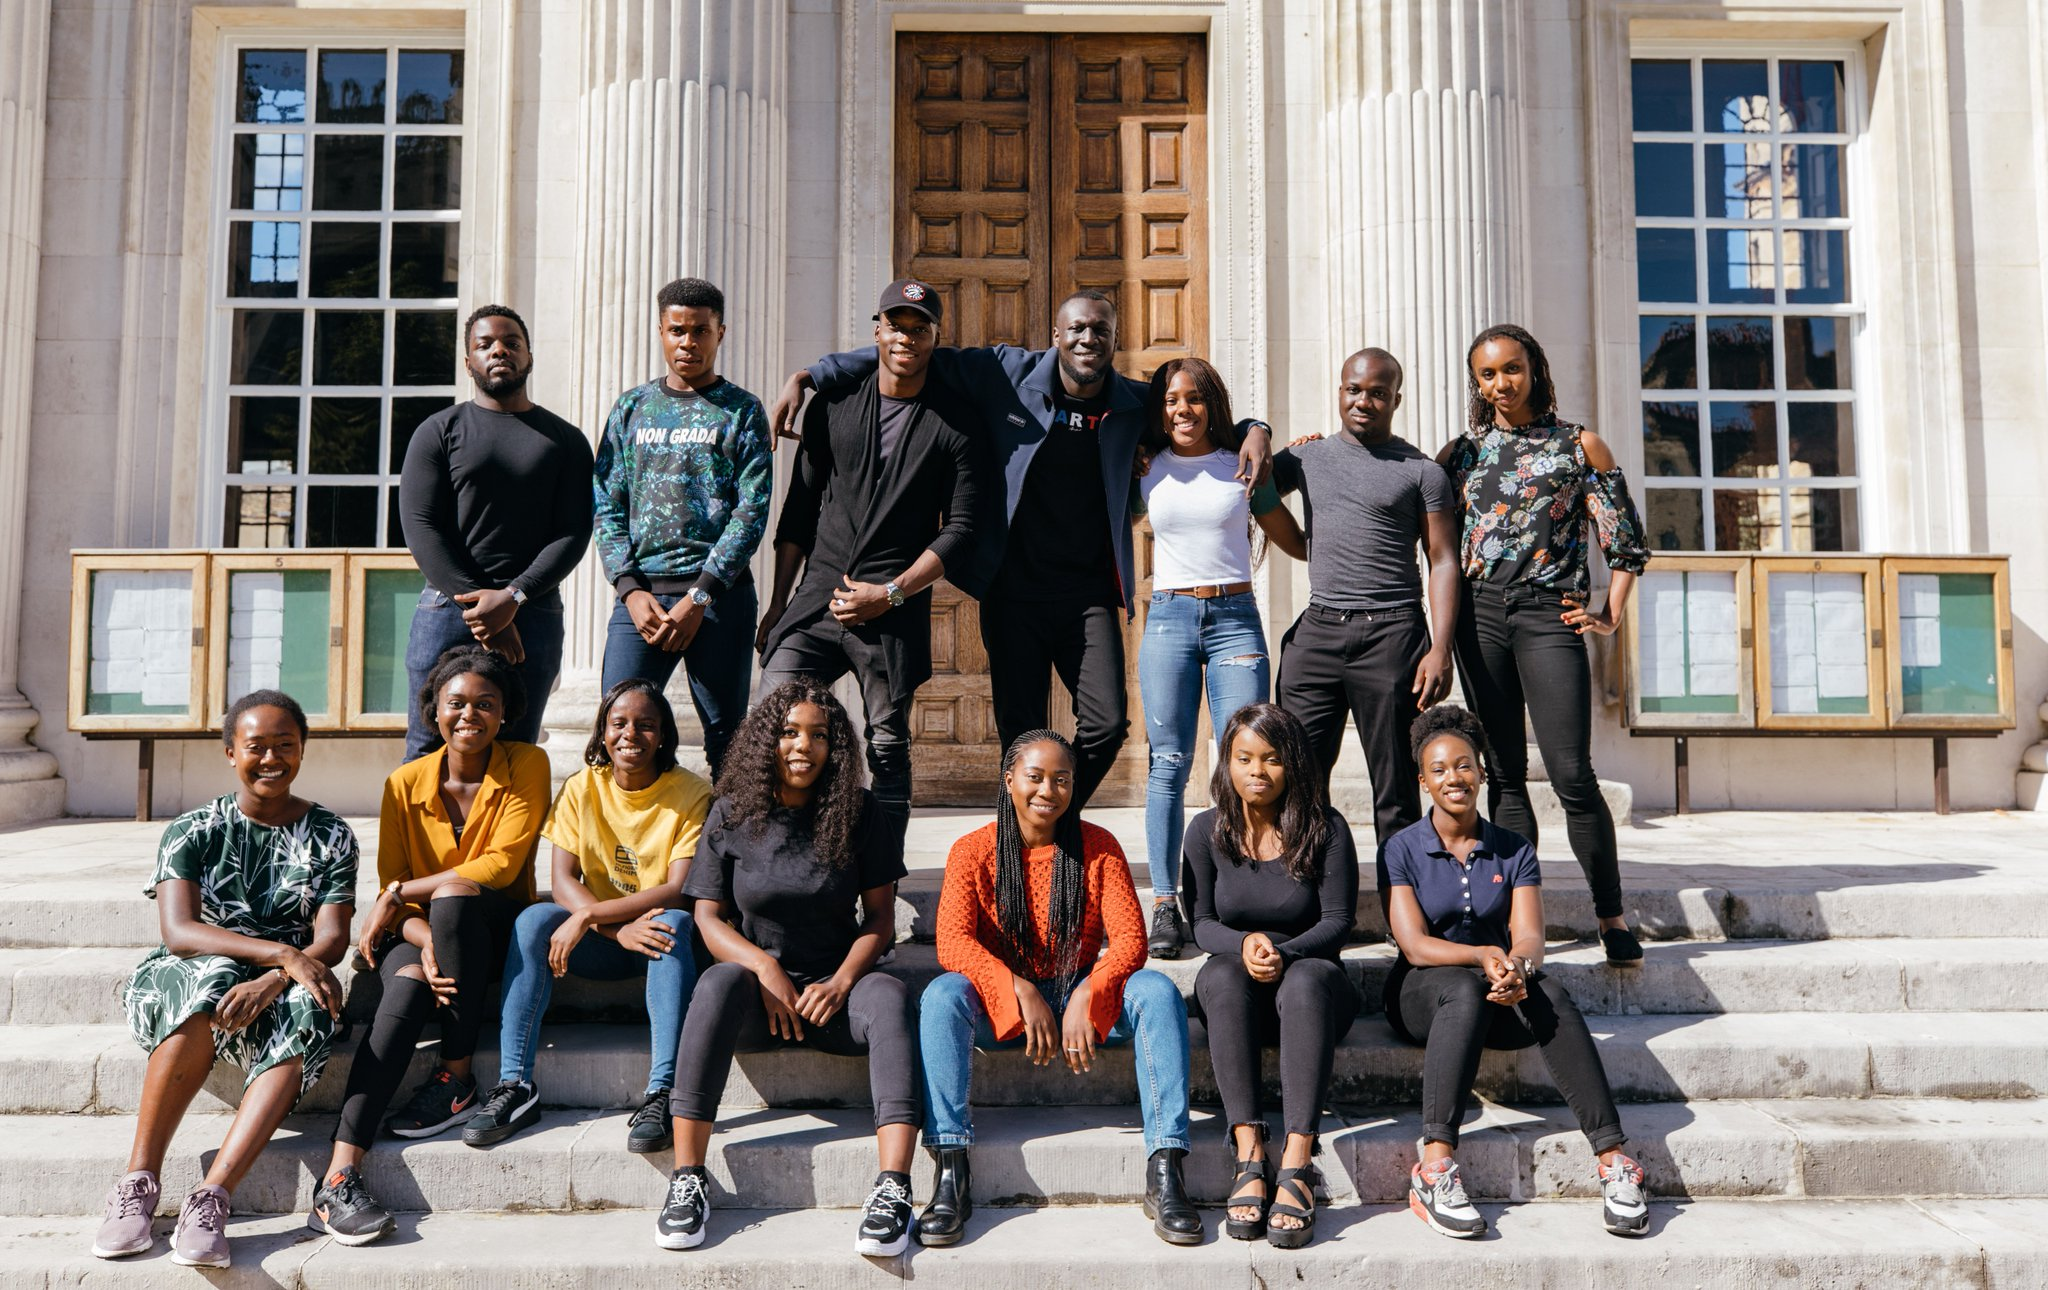 Stormzy announces Cambridge University scholarship for black students. https://t.co/jfUQbIrulF https://t.co/llemBvyP77